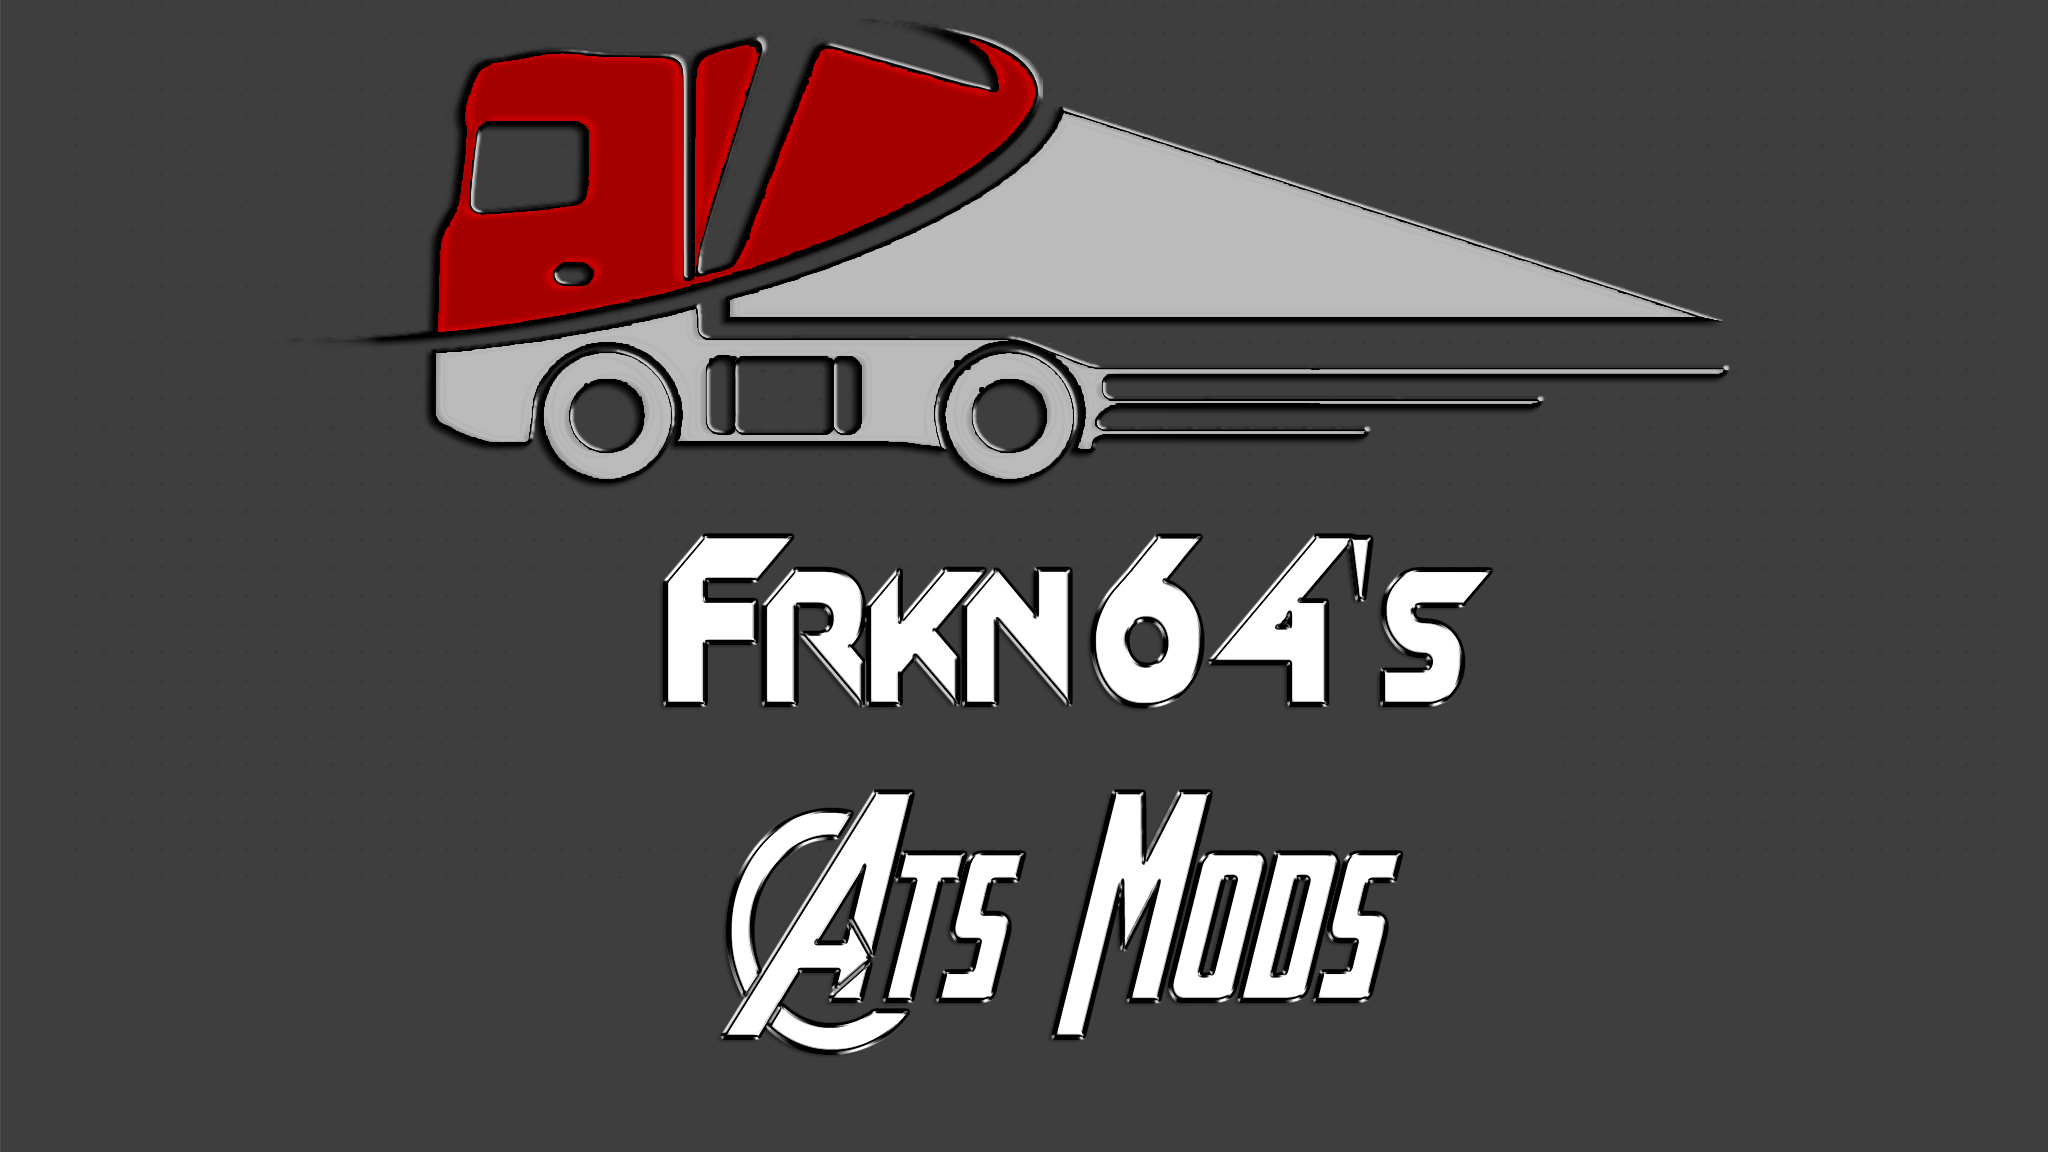 Info about modder Frkn64